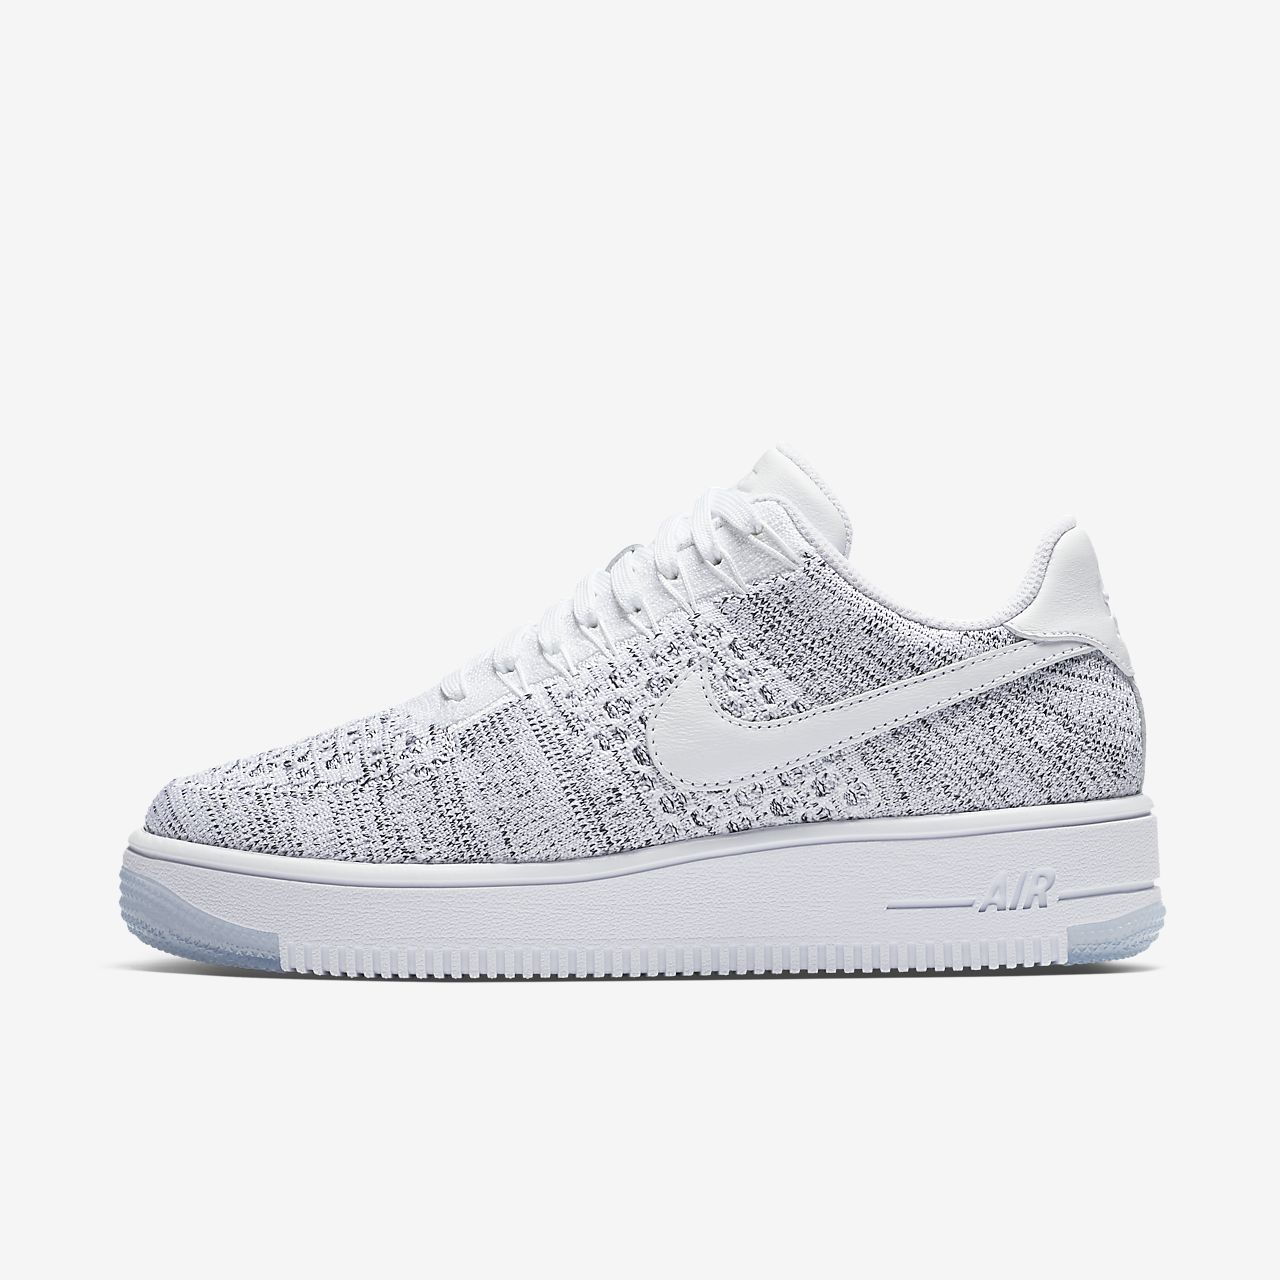 flyknits air force 1 nz